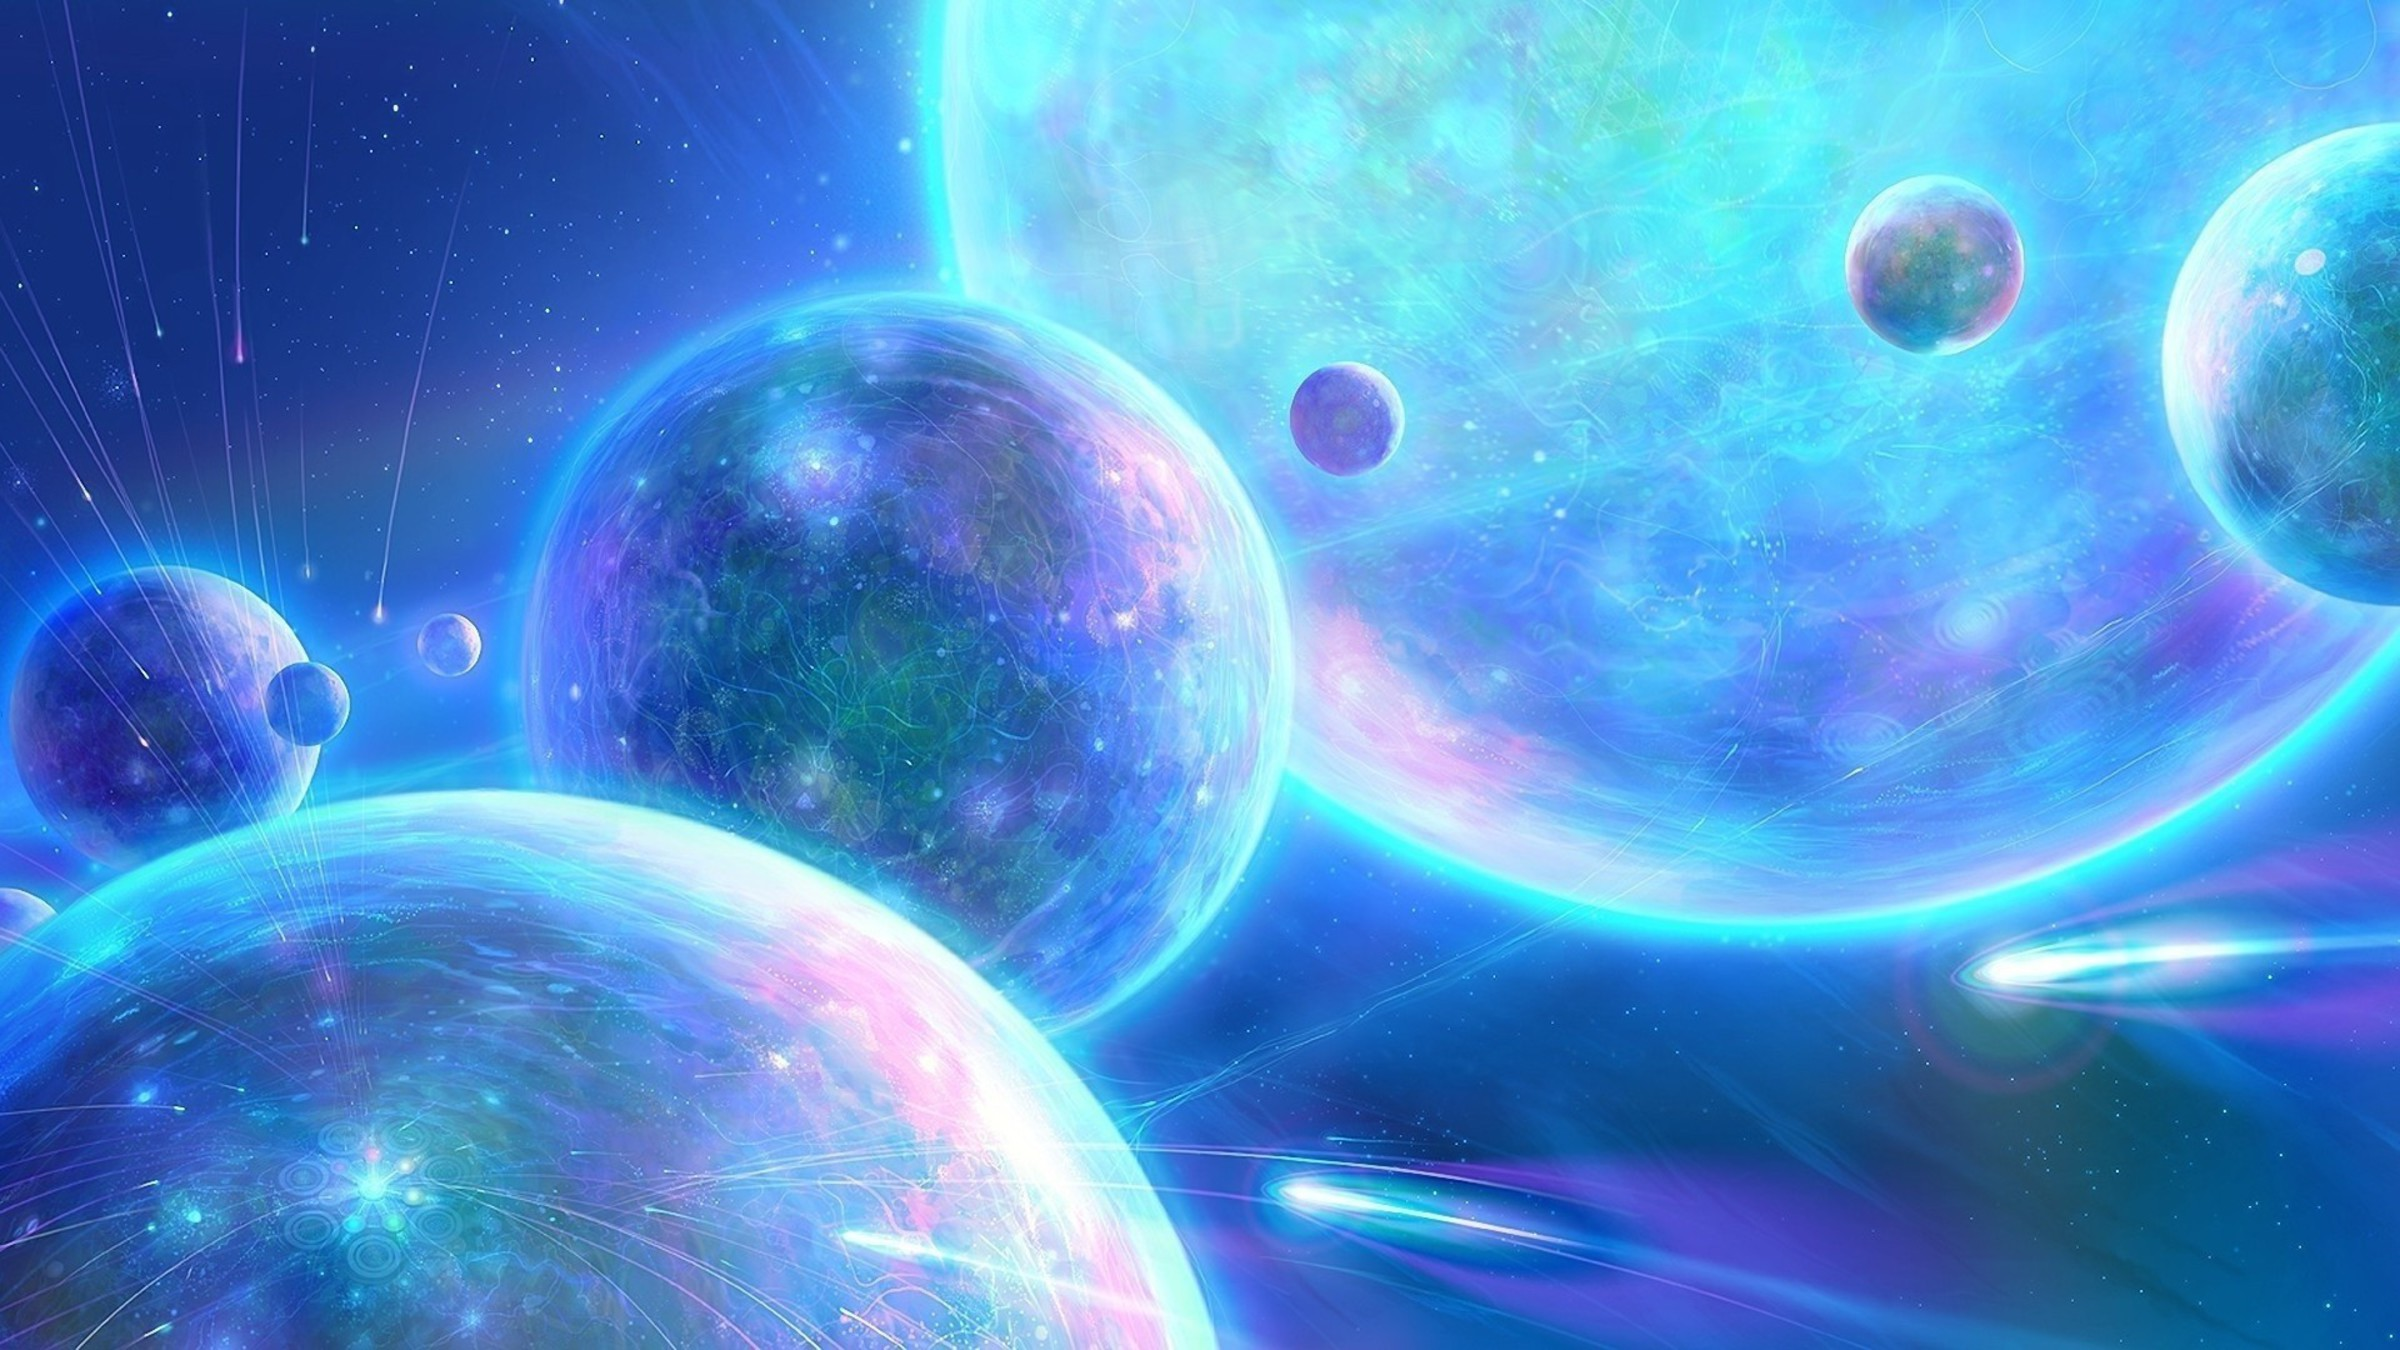 outer space planets - HD1920×1080